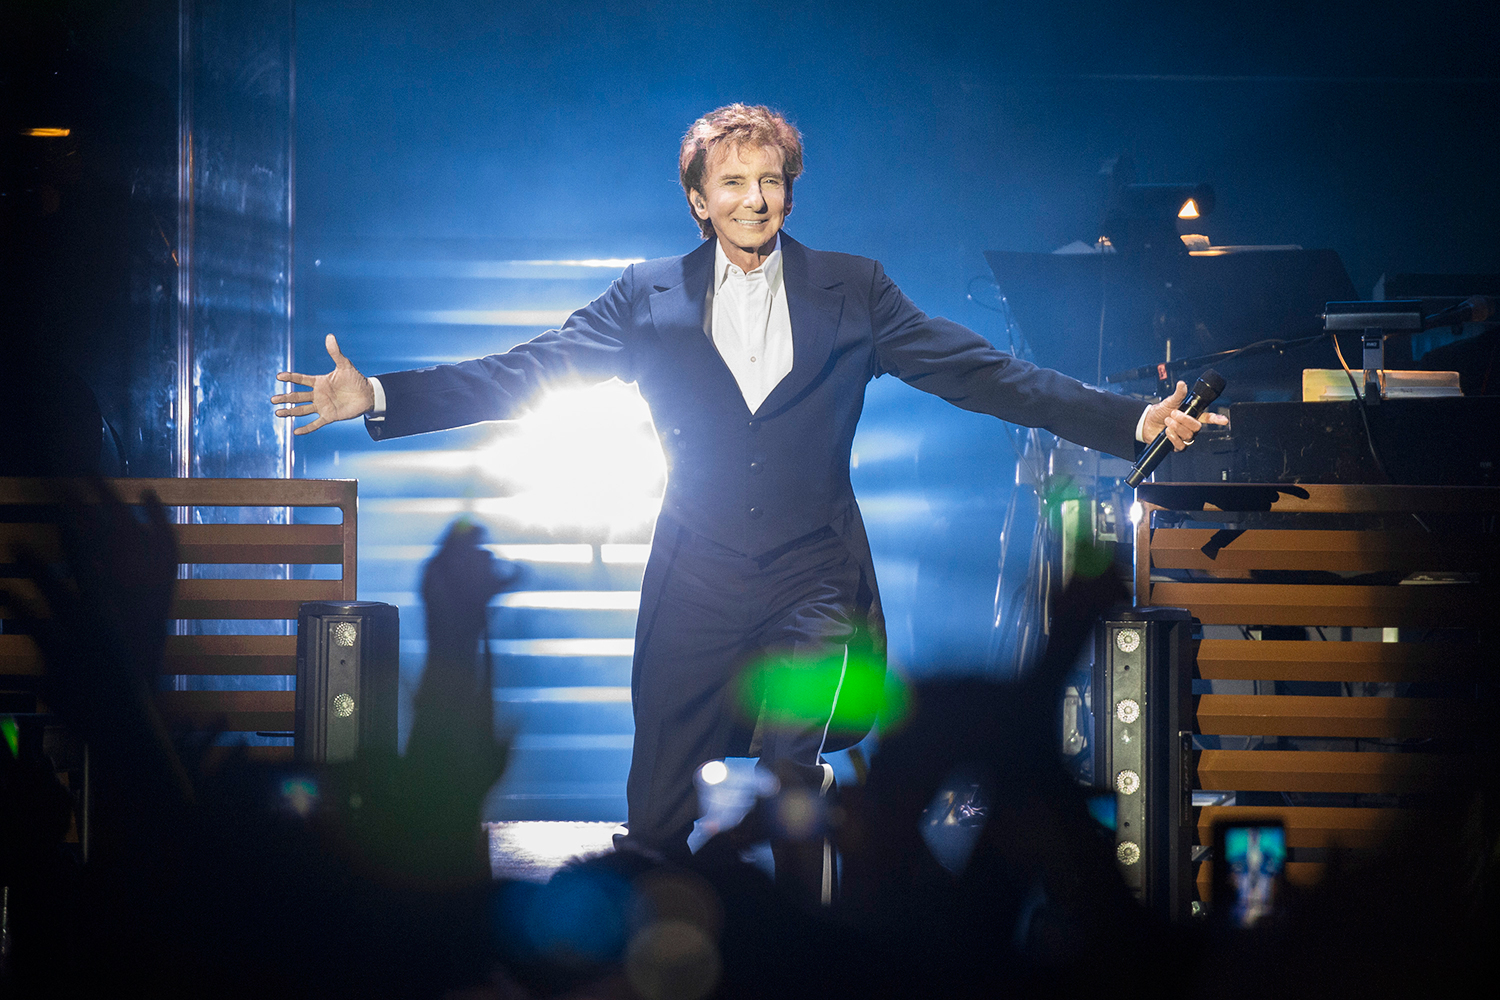 Yes, barry manilow got gay